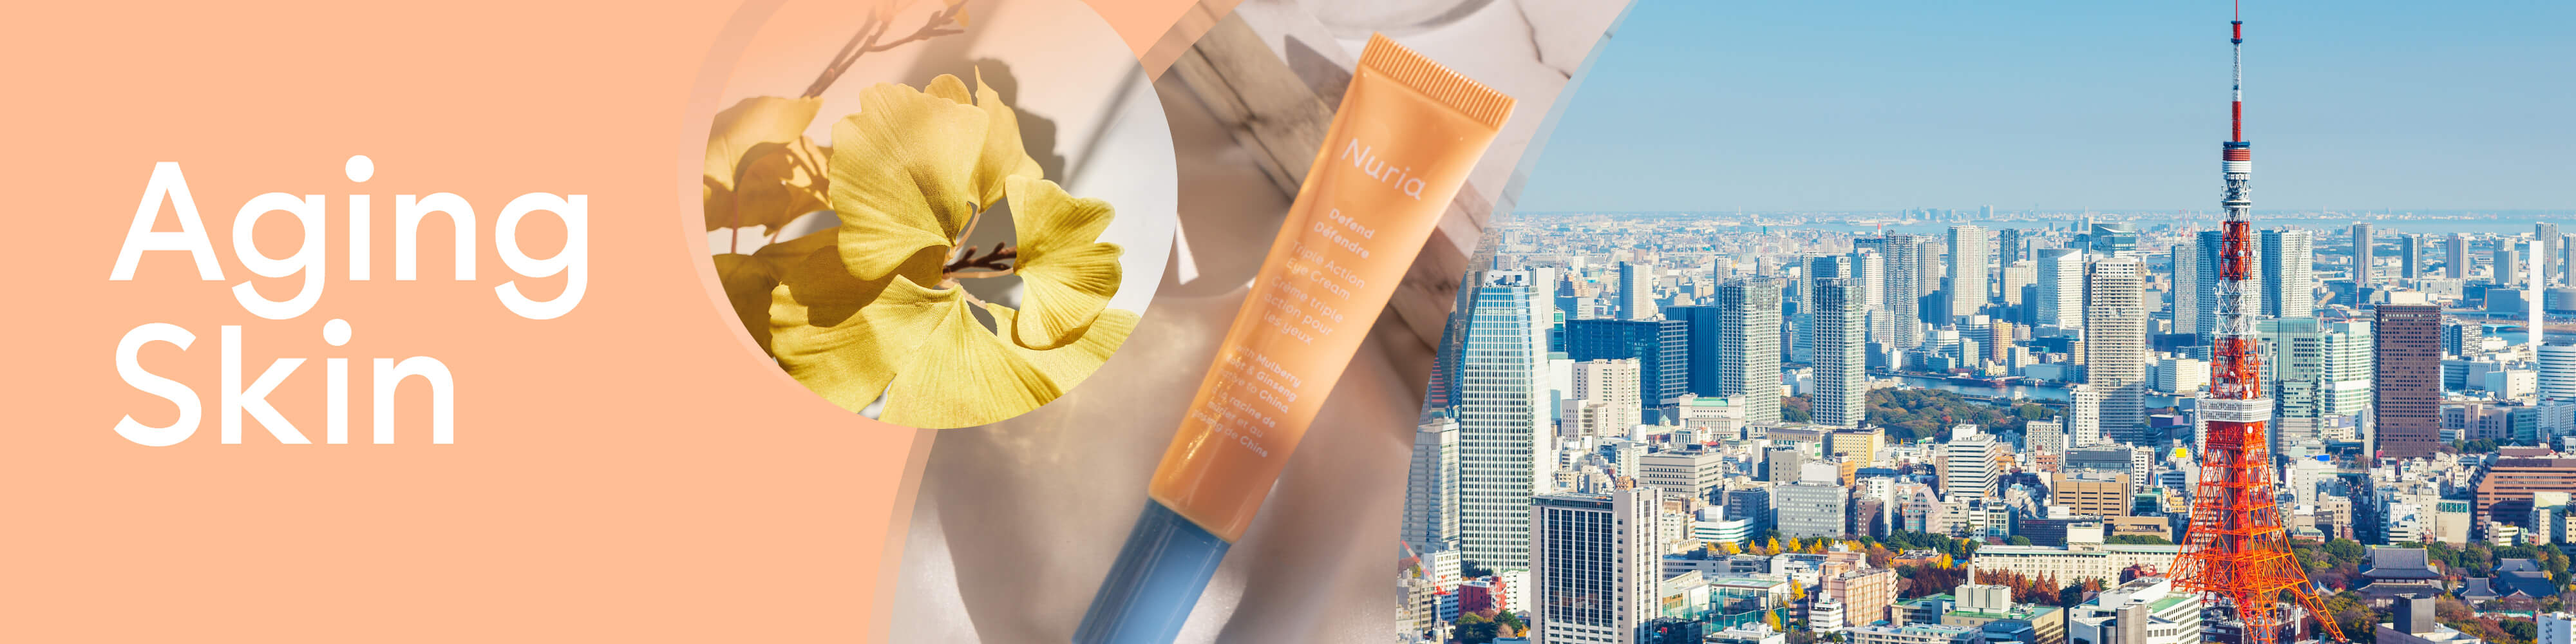 Aging Skin - Nuria's product for your skin concerns